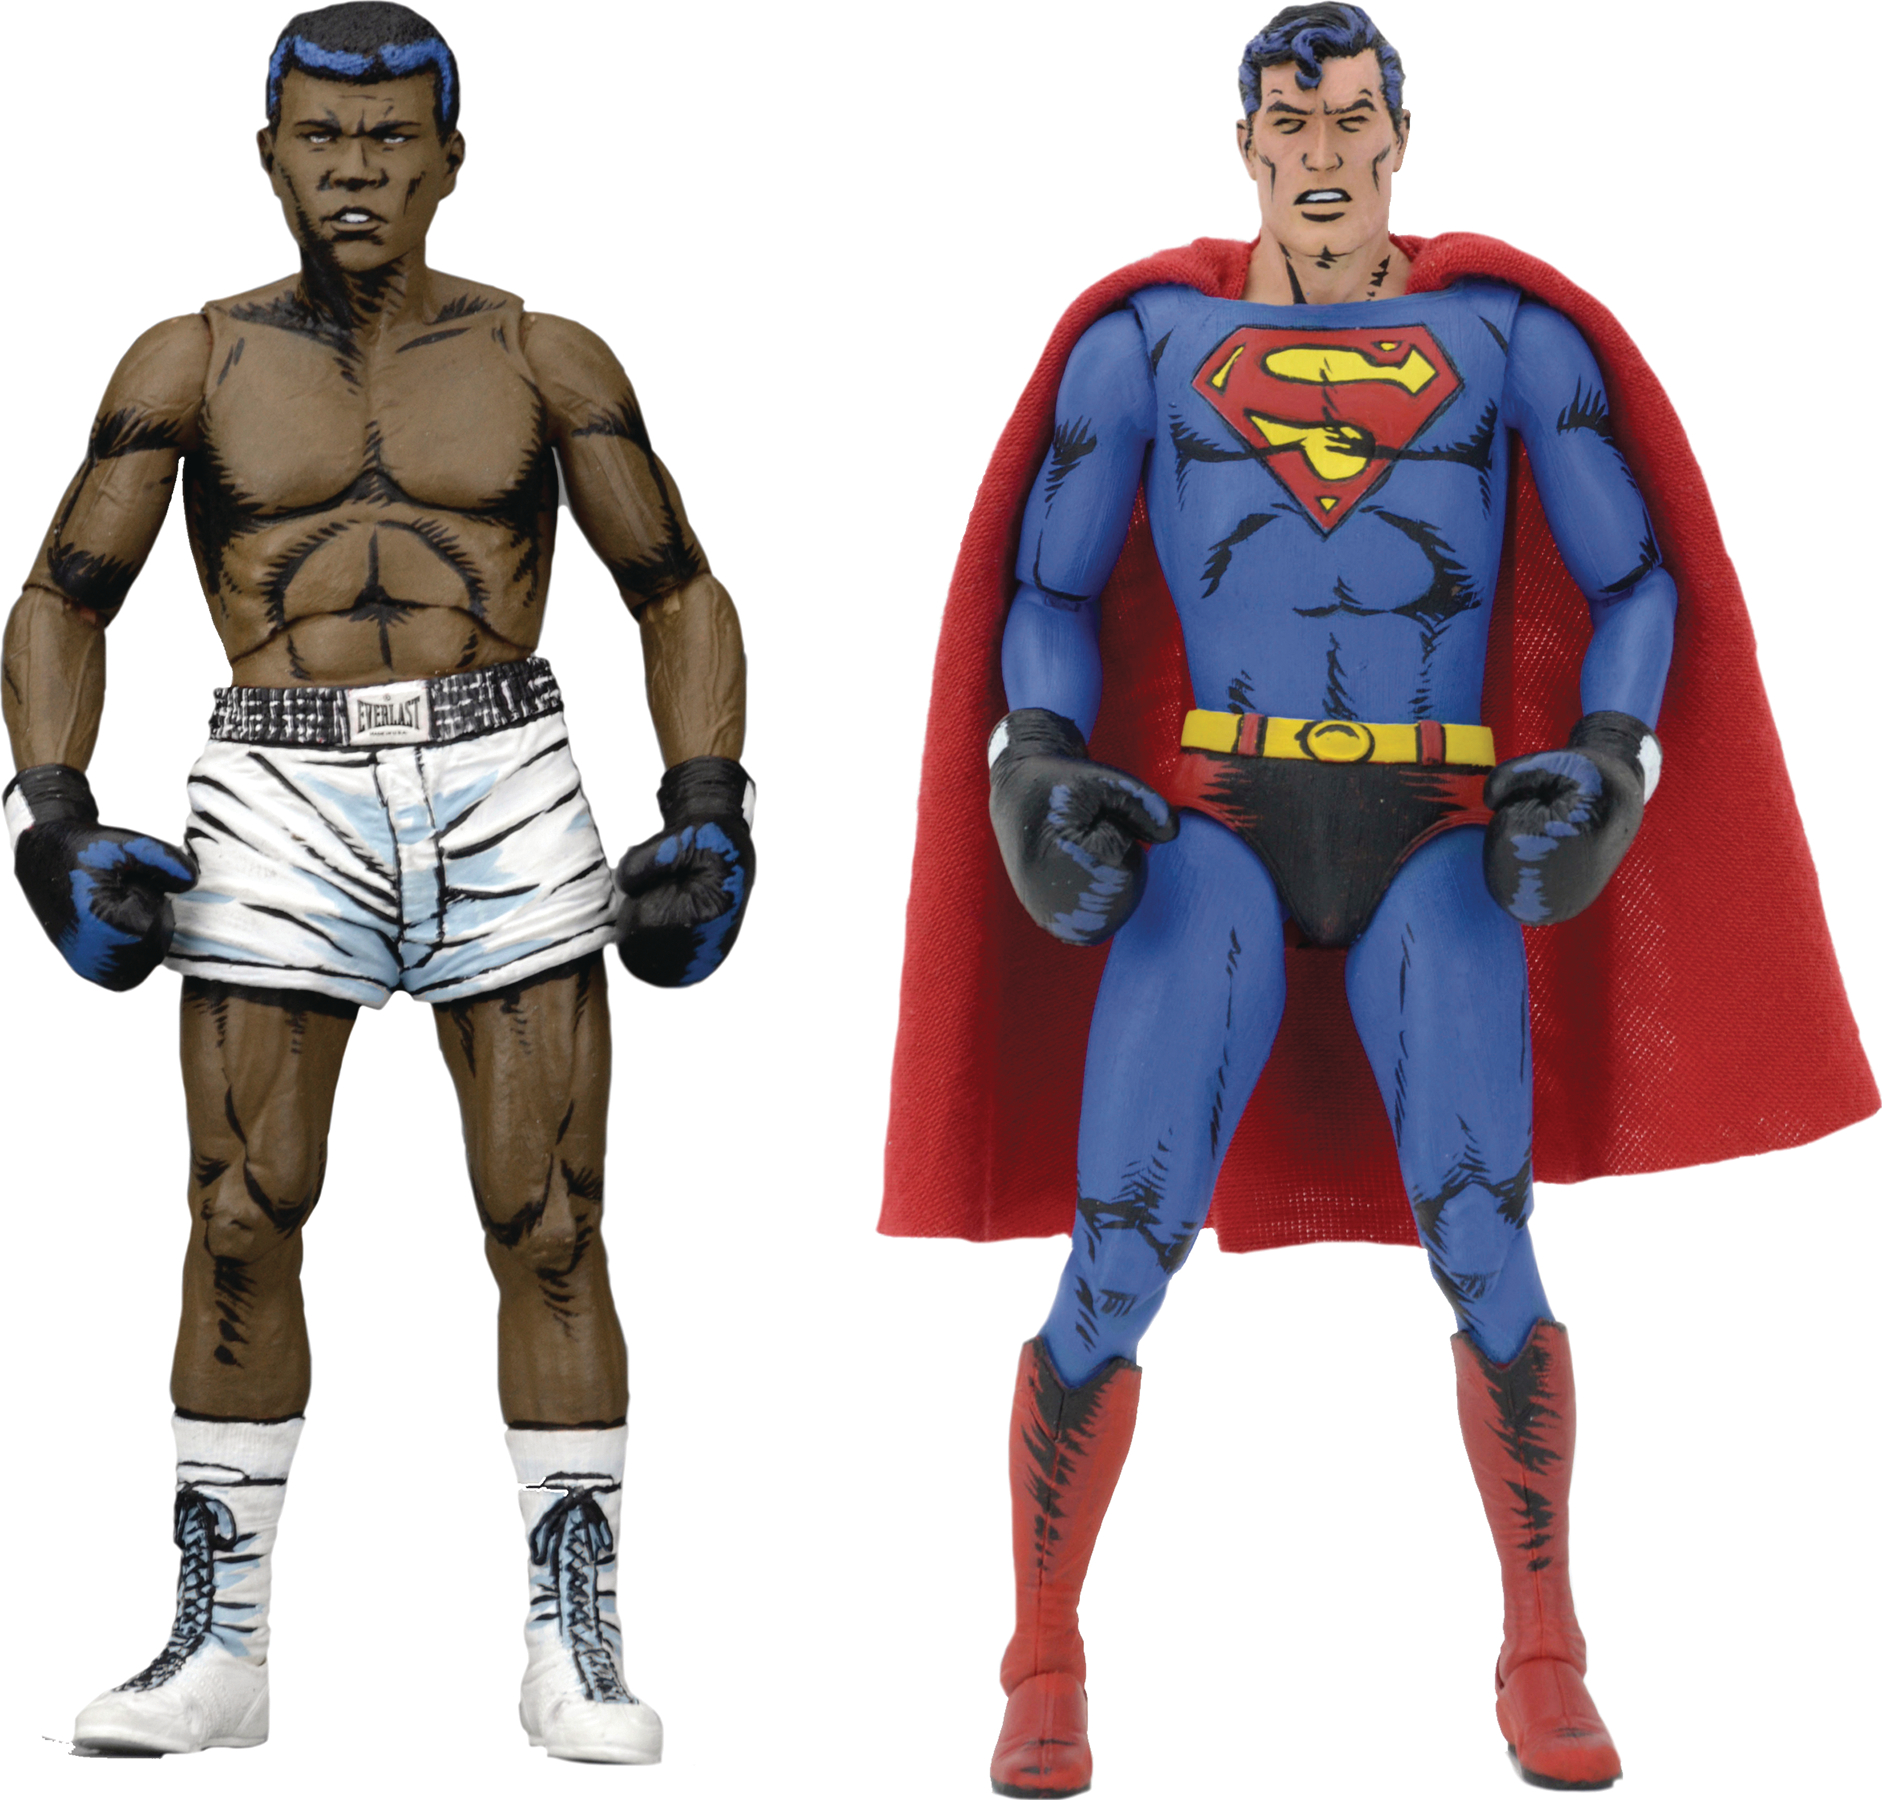 SUPERMAN VS MUHAMMAD ALI 7IN ACTION FIGURE 2PK